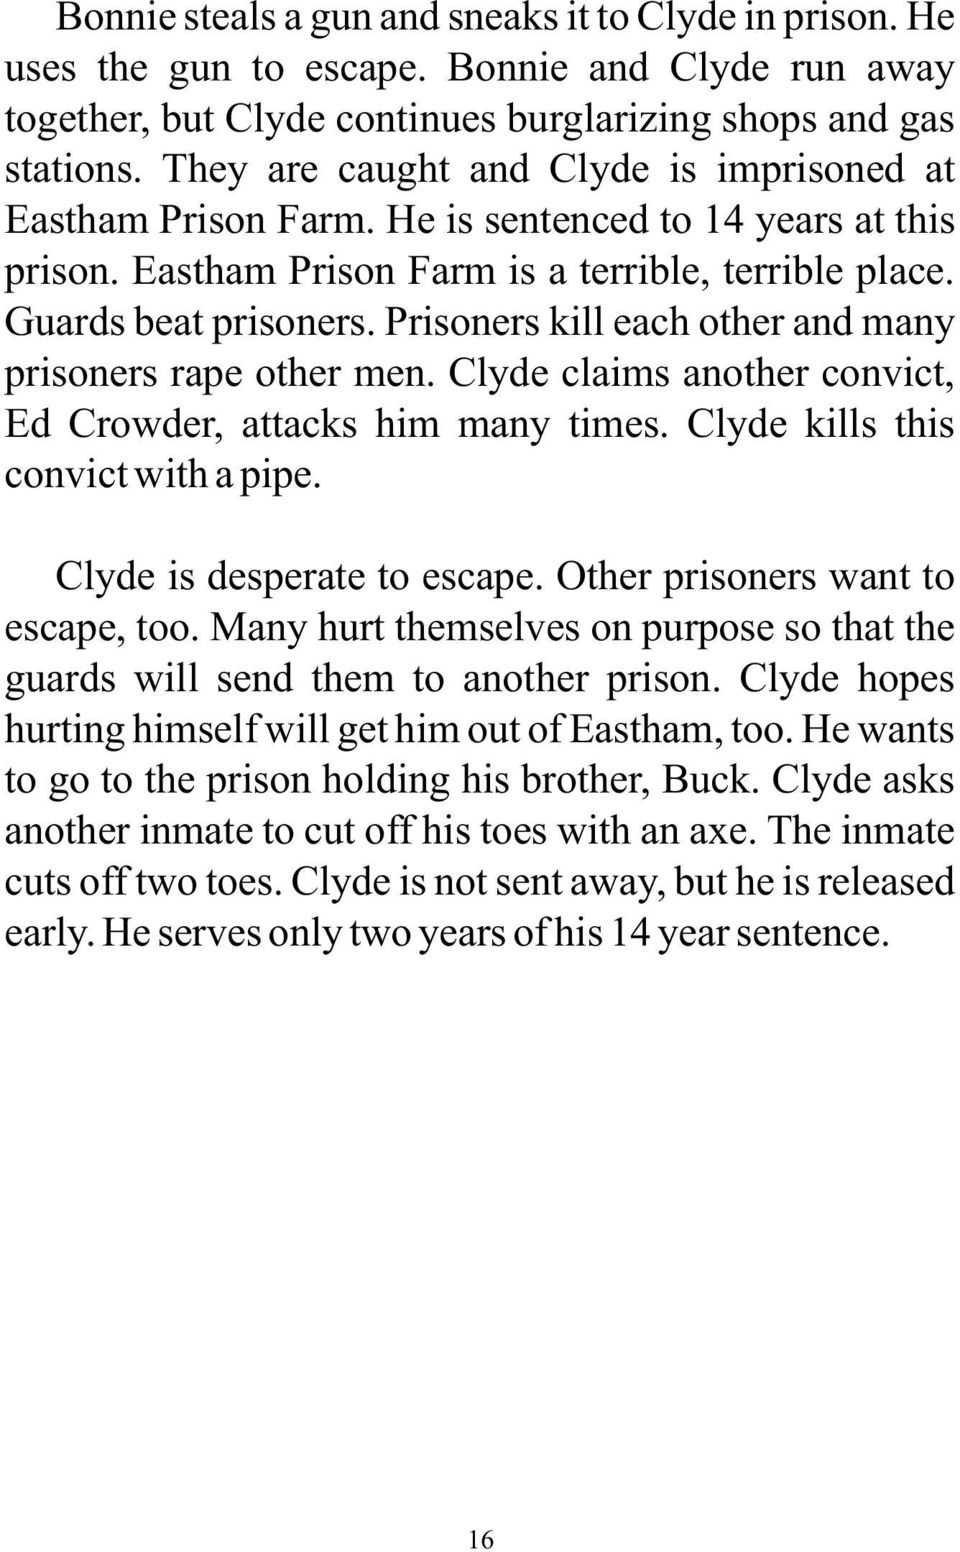 Prisoners kill each other and many prisoners rape other men. Clyde claims another convict, Ed Crowder, attacks him many times. Clyde kills this convict with a pipe. Clyde is desperate to escape.